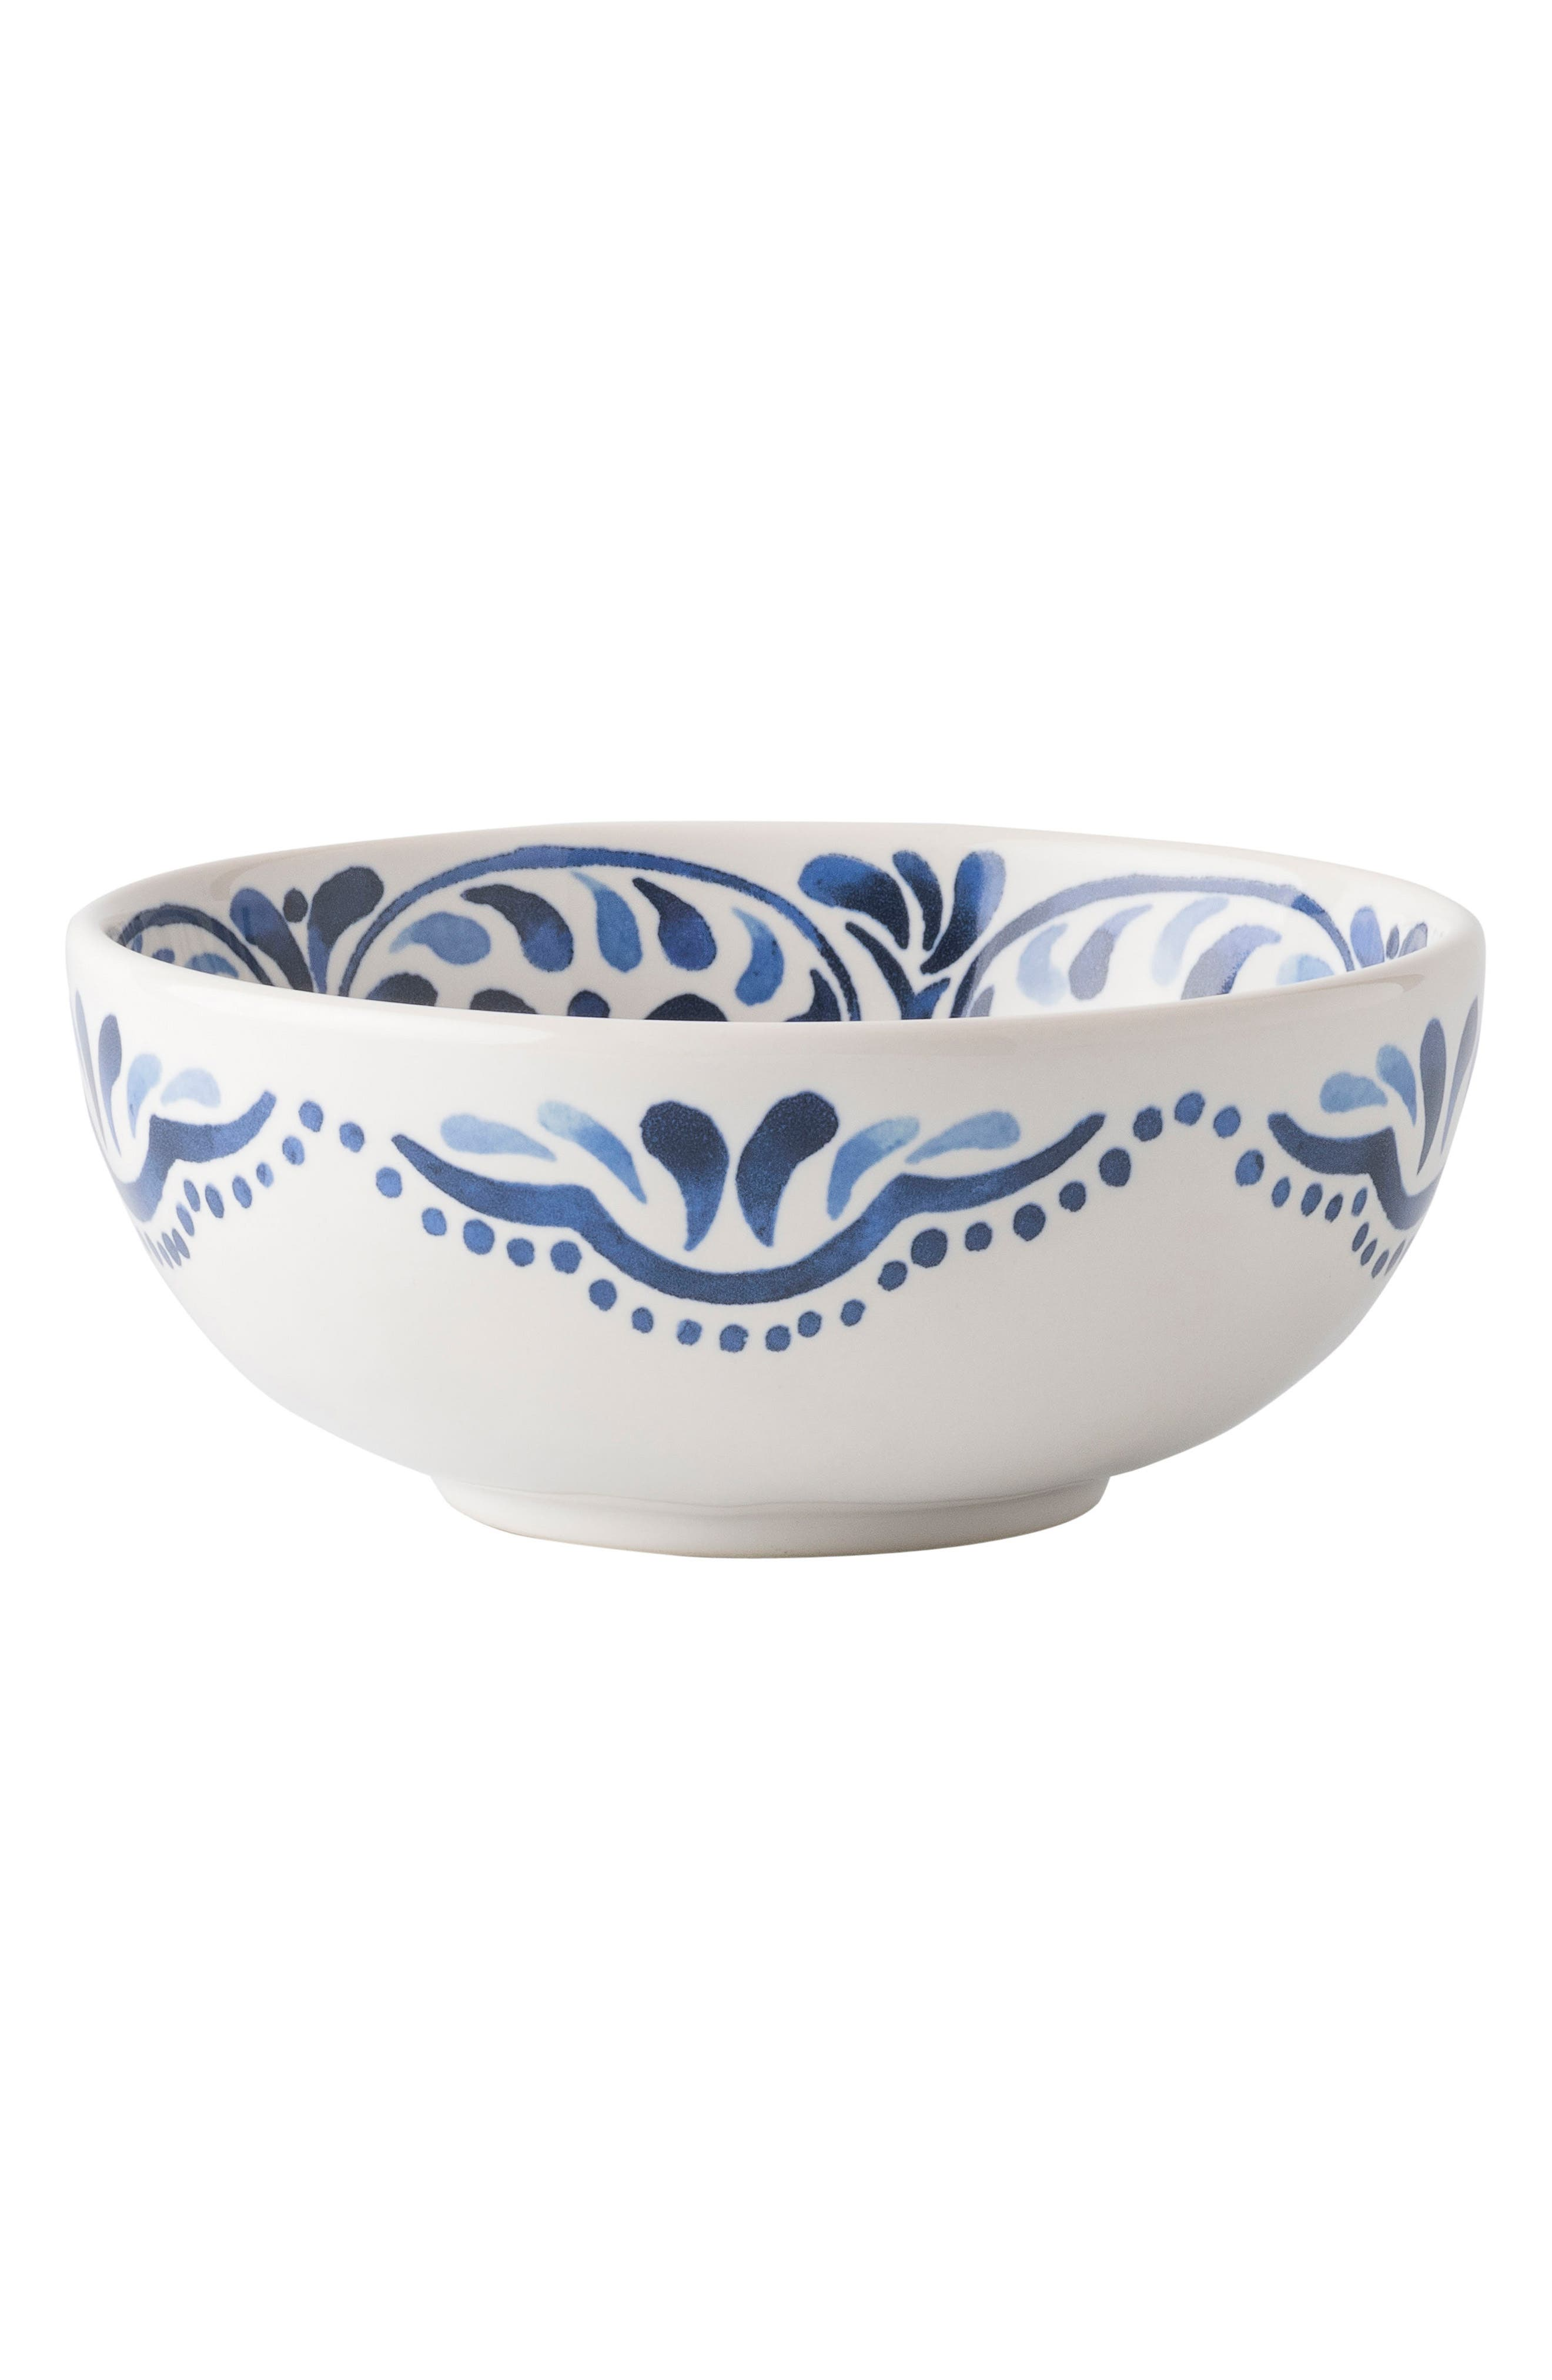 Wanderlust Collection - Iberian Journey Ceramic Cereal Bowl,                             Main thumbnail 1, color,                             INDIGO